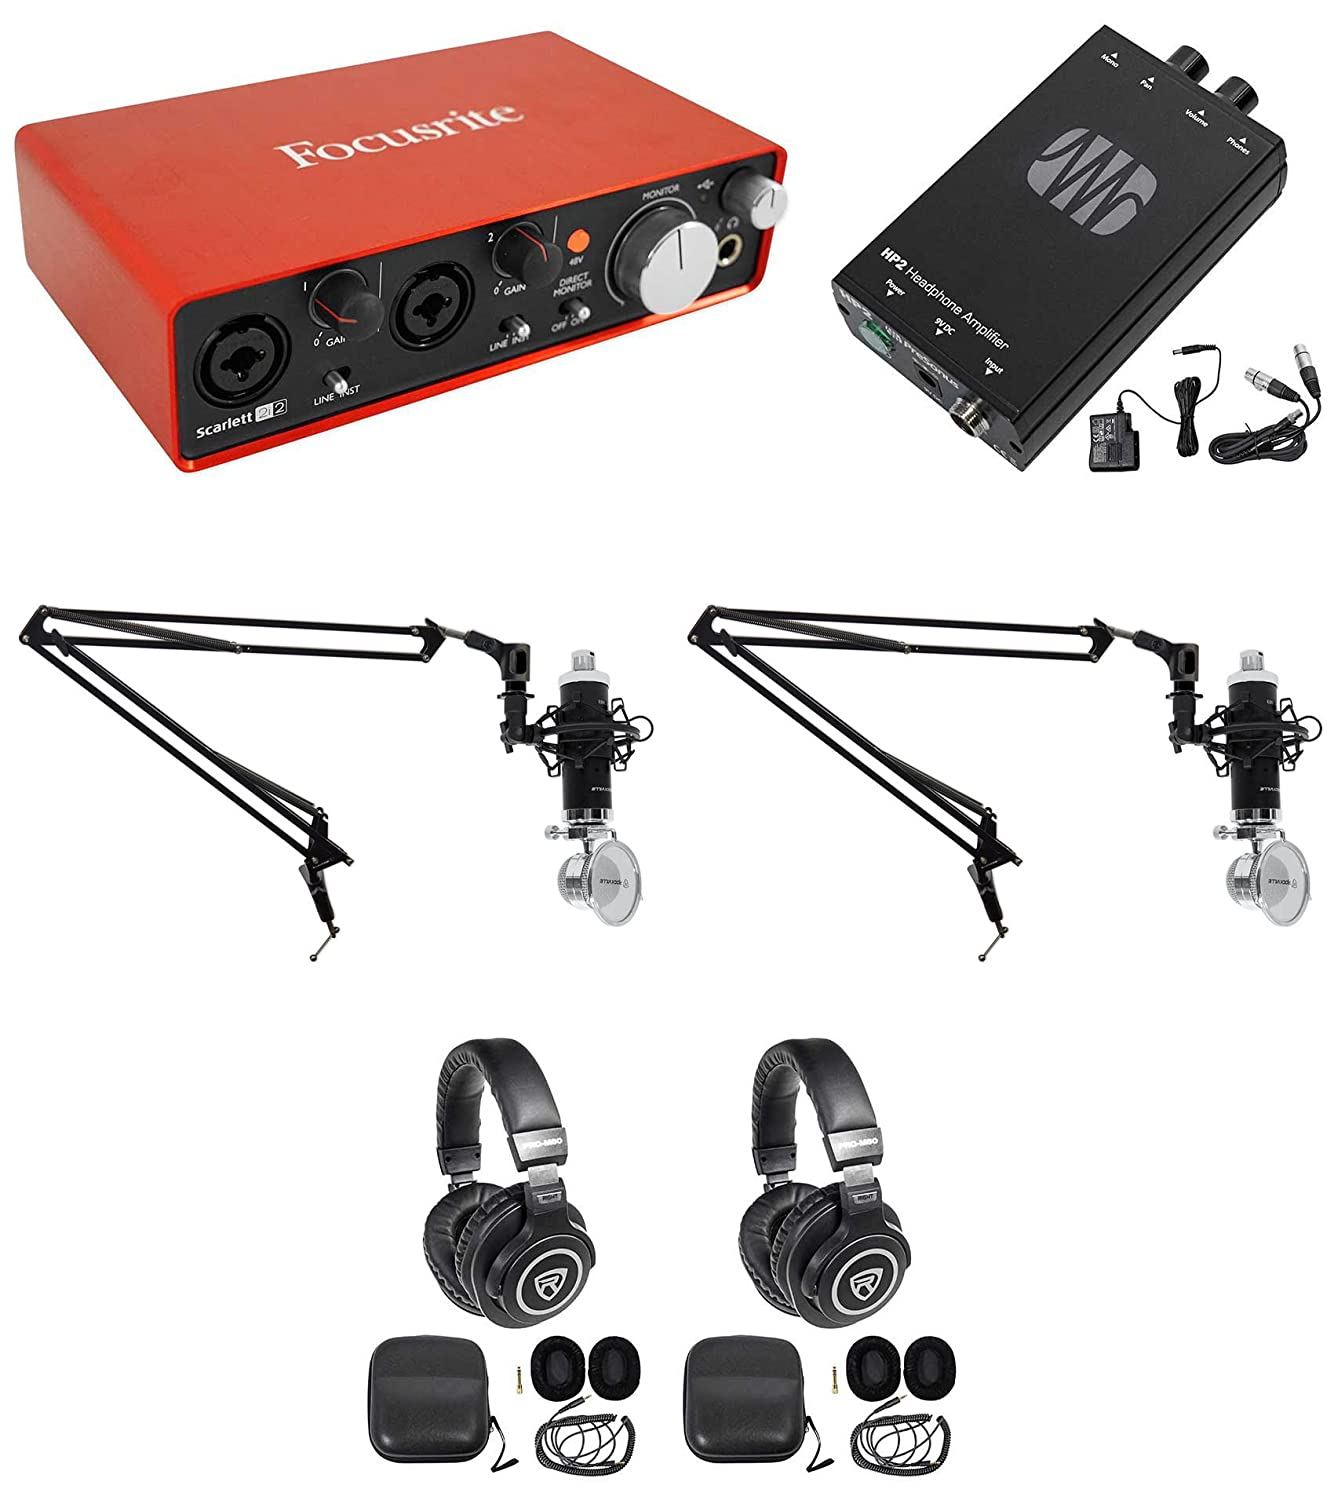 Rockville Podcasting Podcast Recording Bundle W 2 Mics Audio Signal Generator 1khz 22khz Headphones Booms Musical Instruments